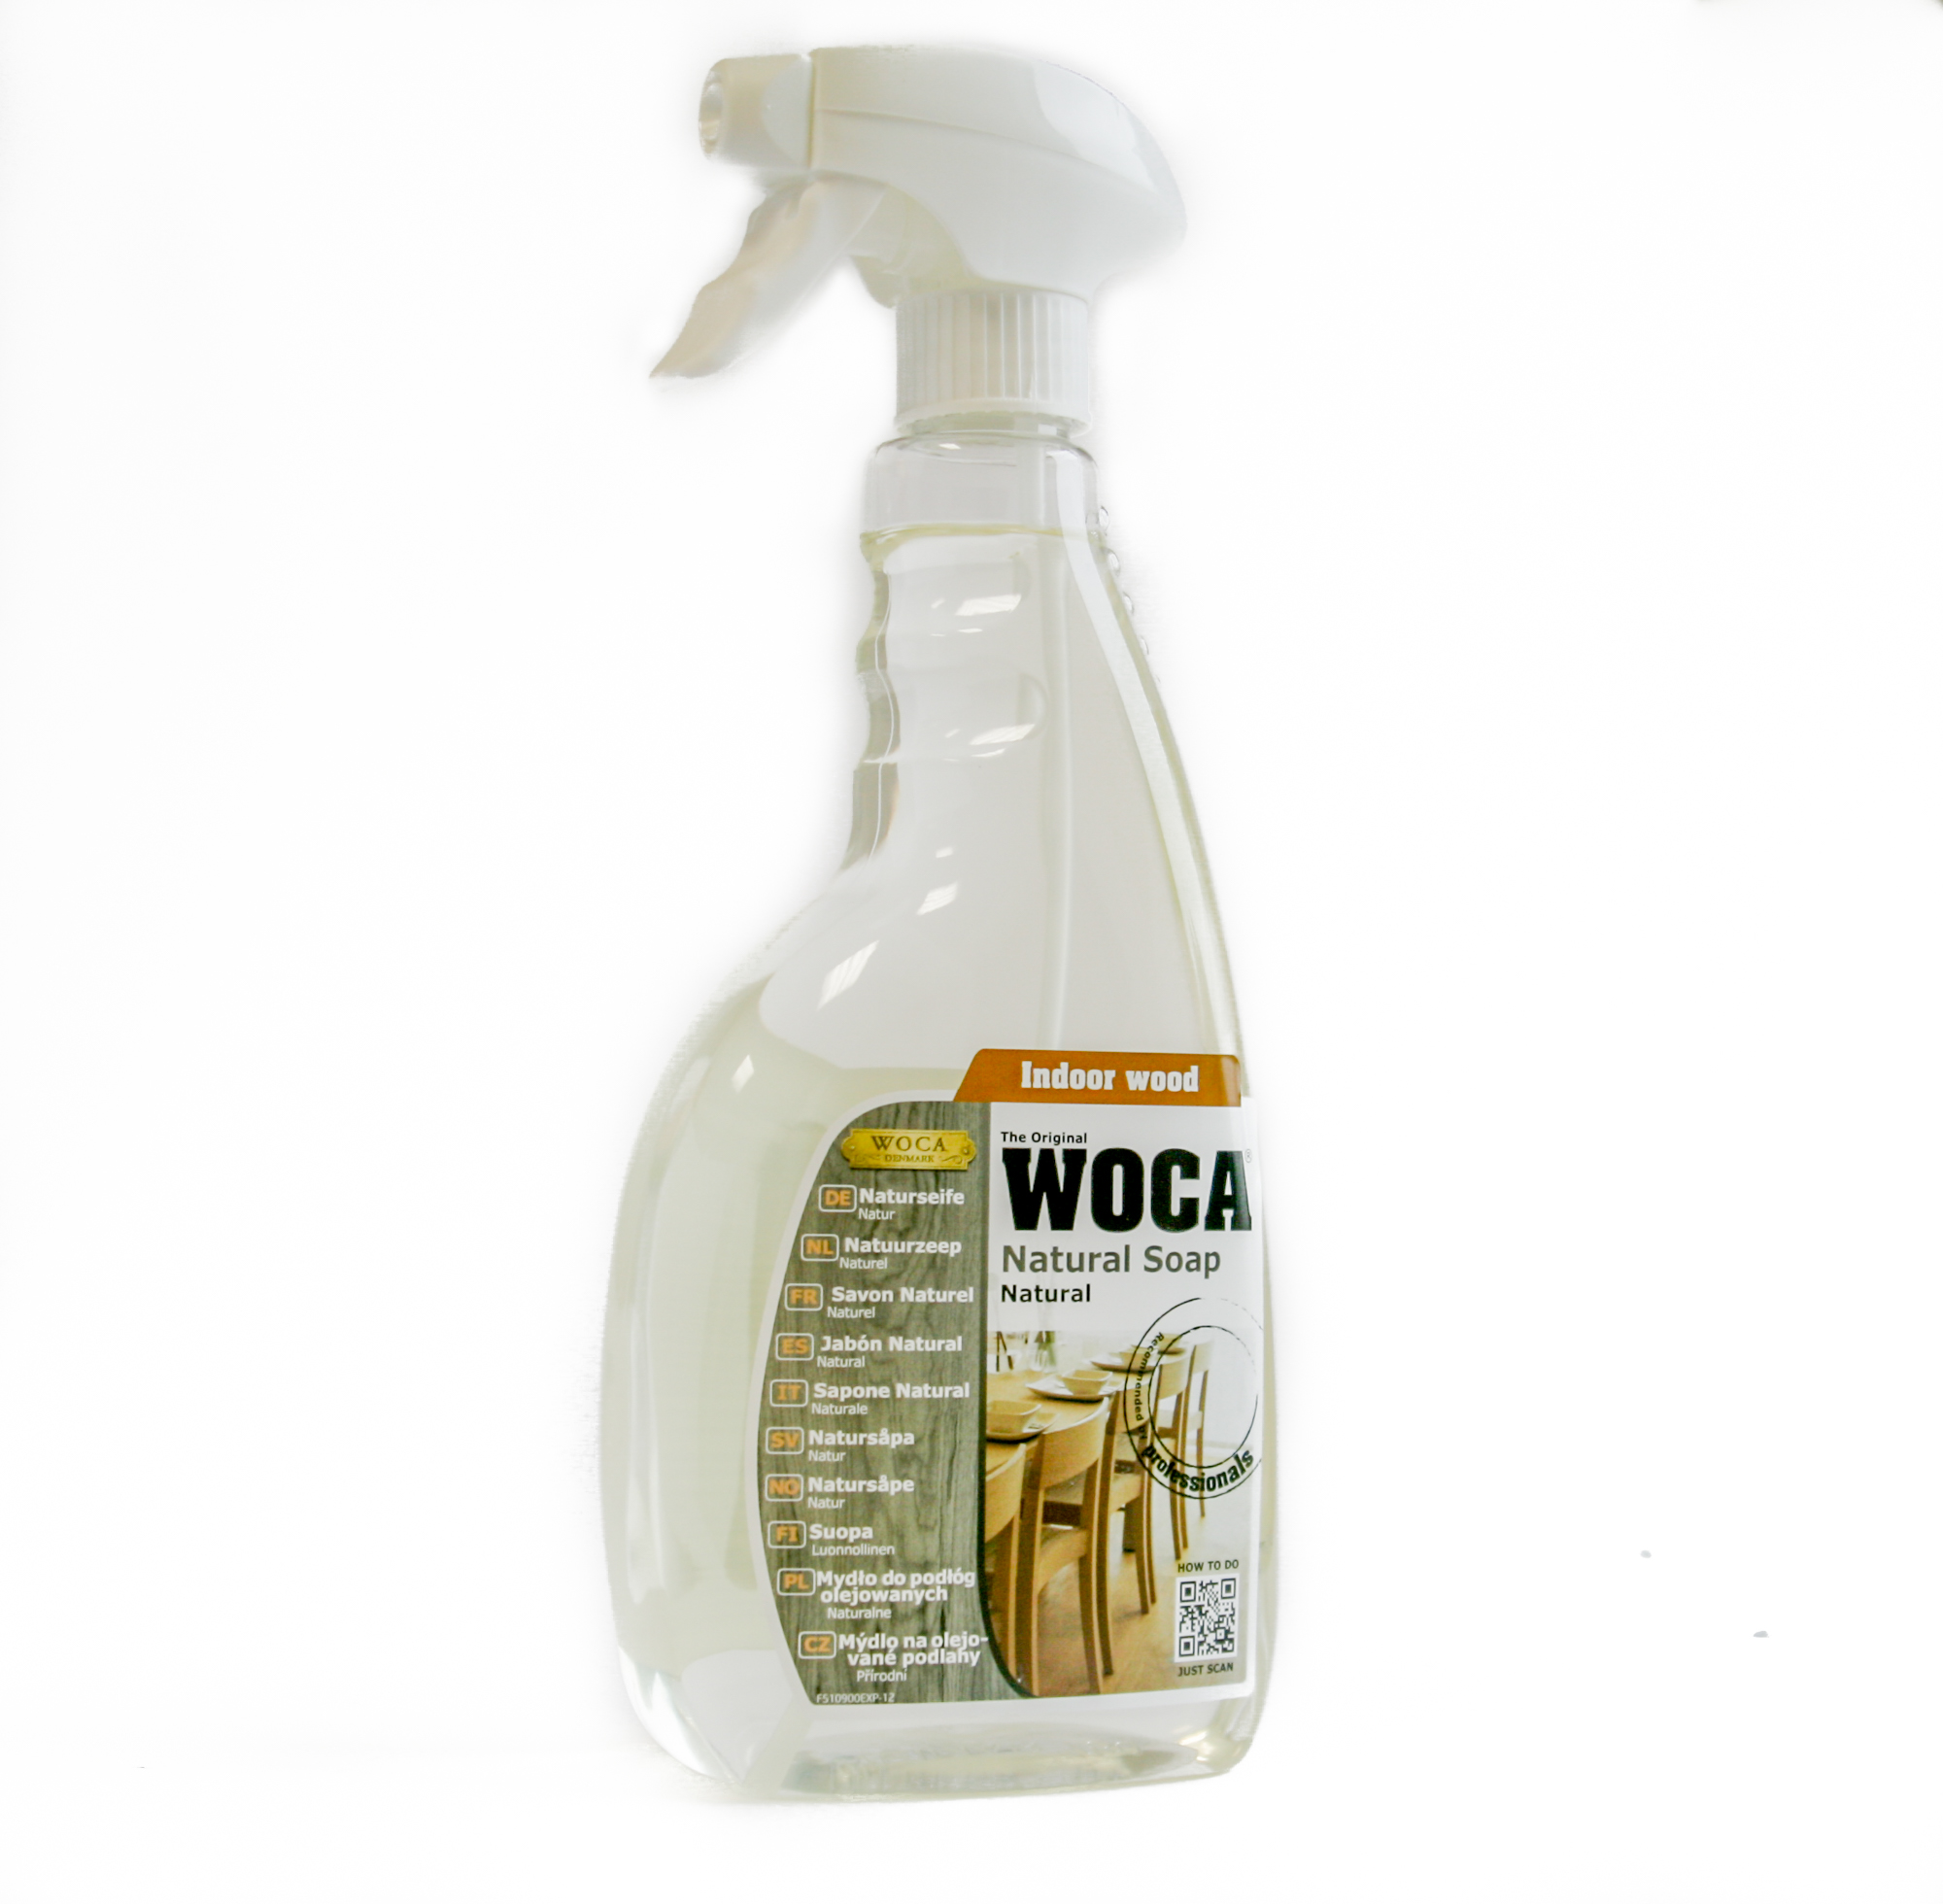 Woca Soap Spray Natural Floorcare Unique Wood Floors